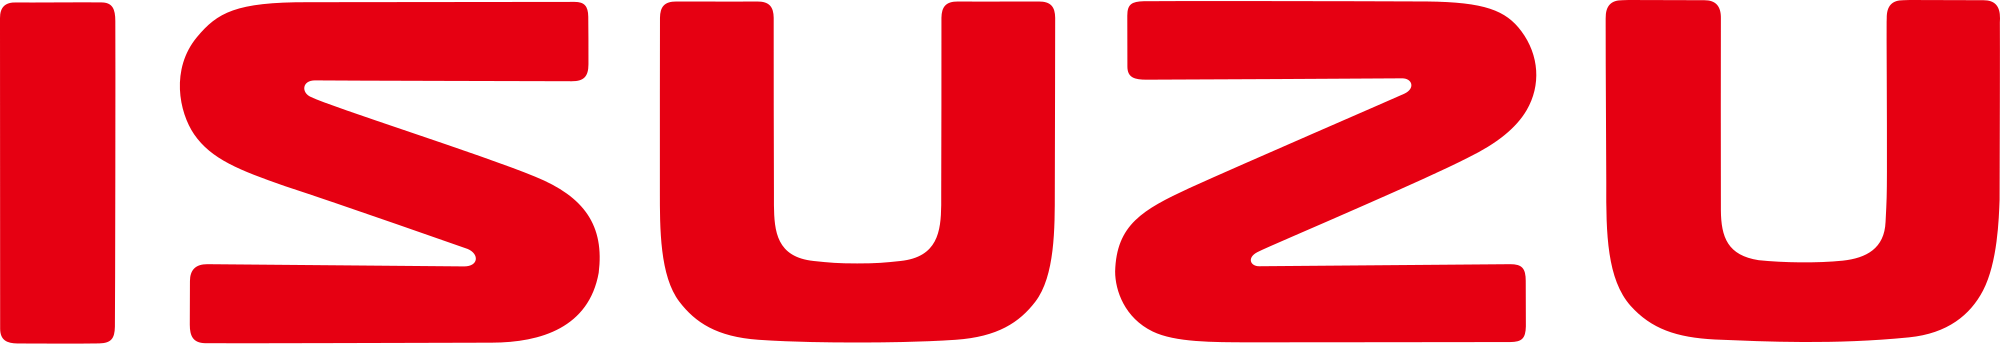 Isuzu Logo - File:Isuzu.svg - Wikimedia Commons